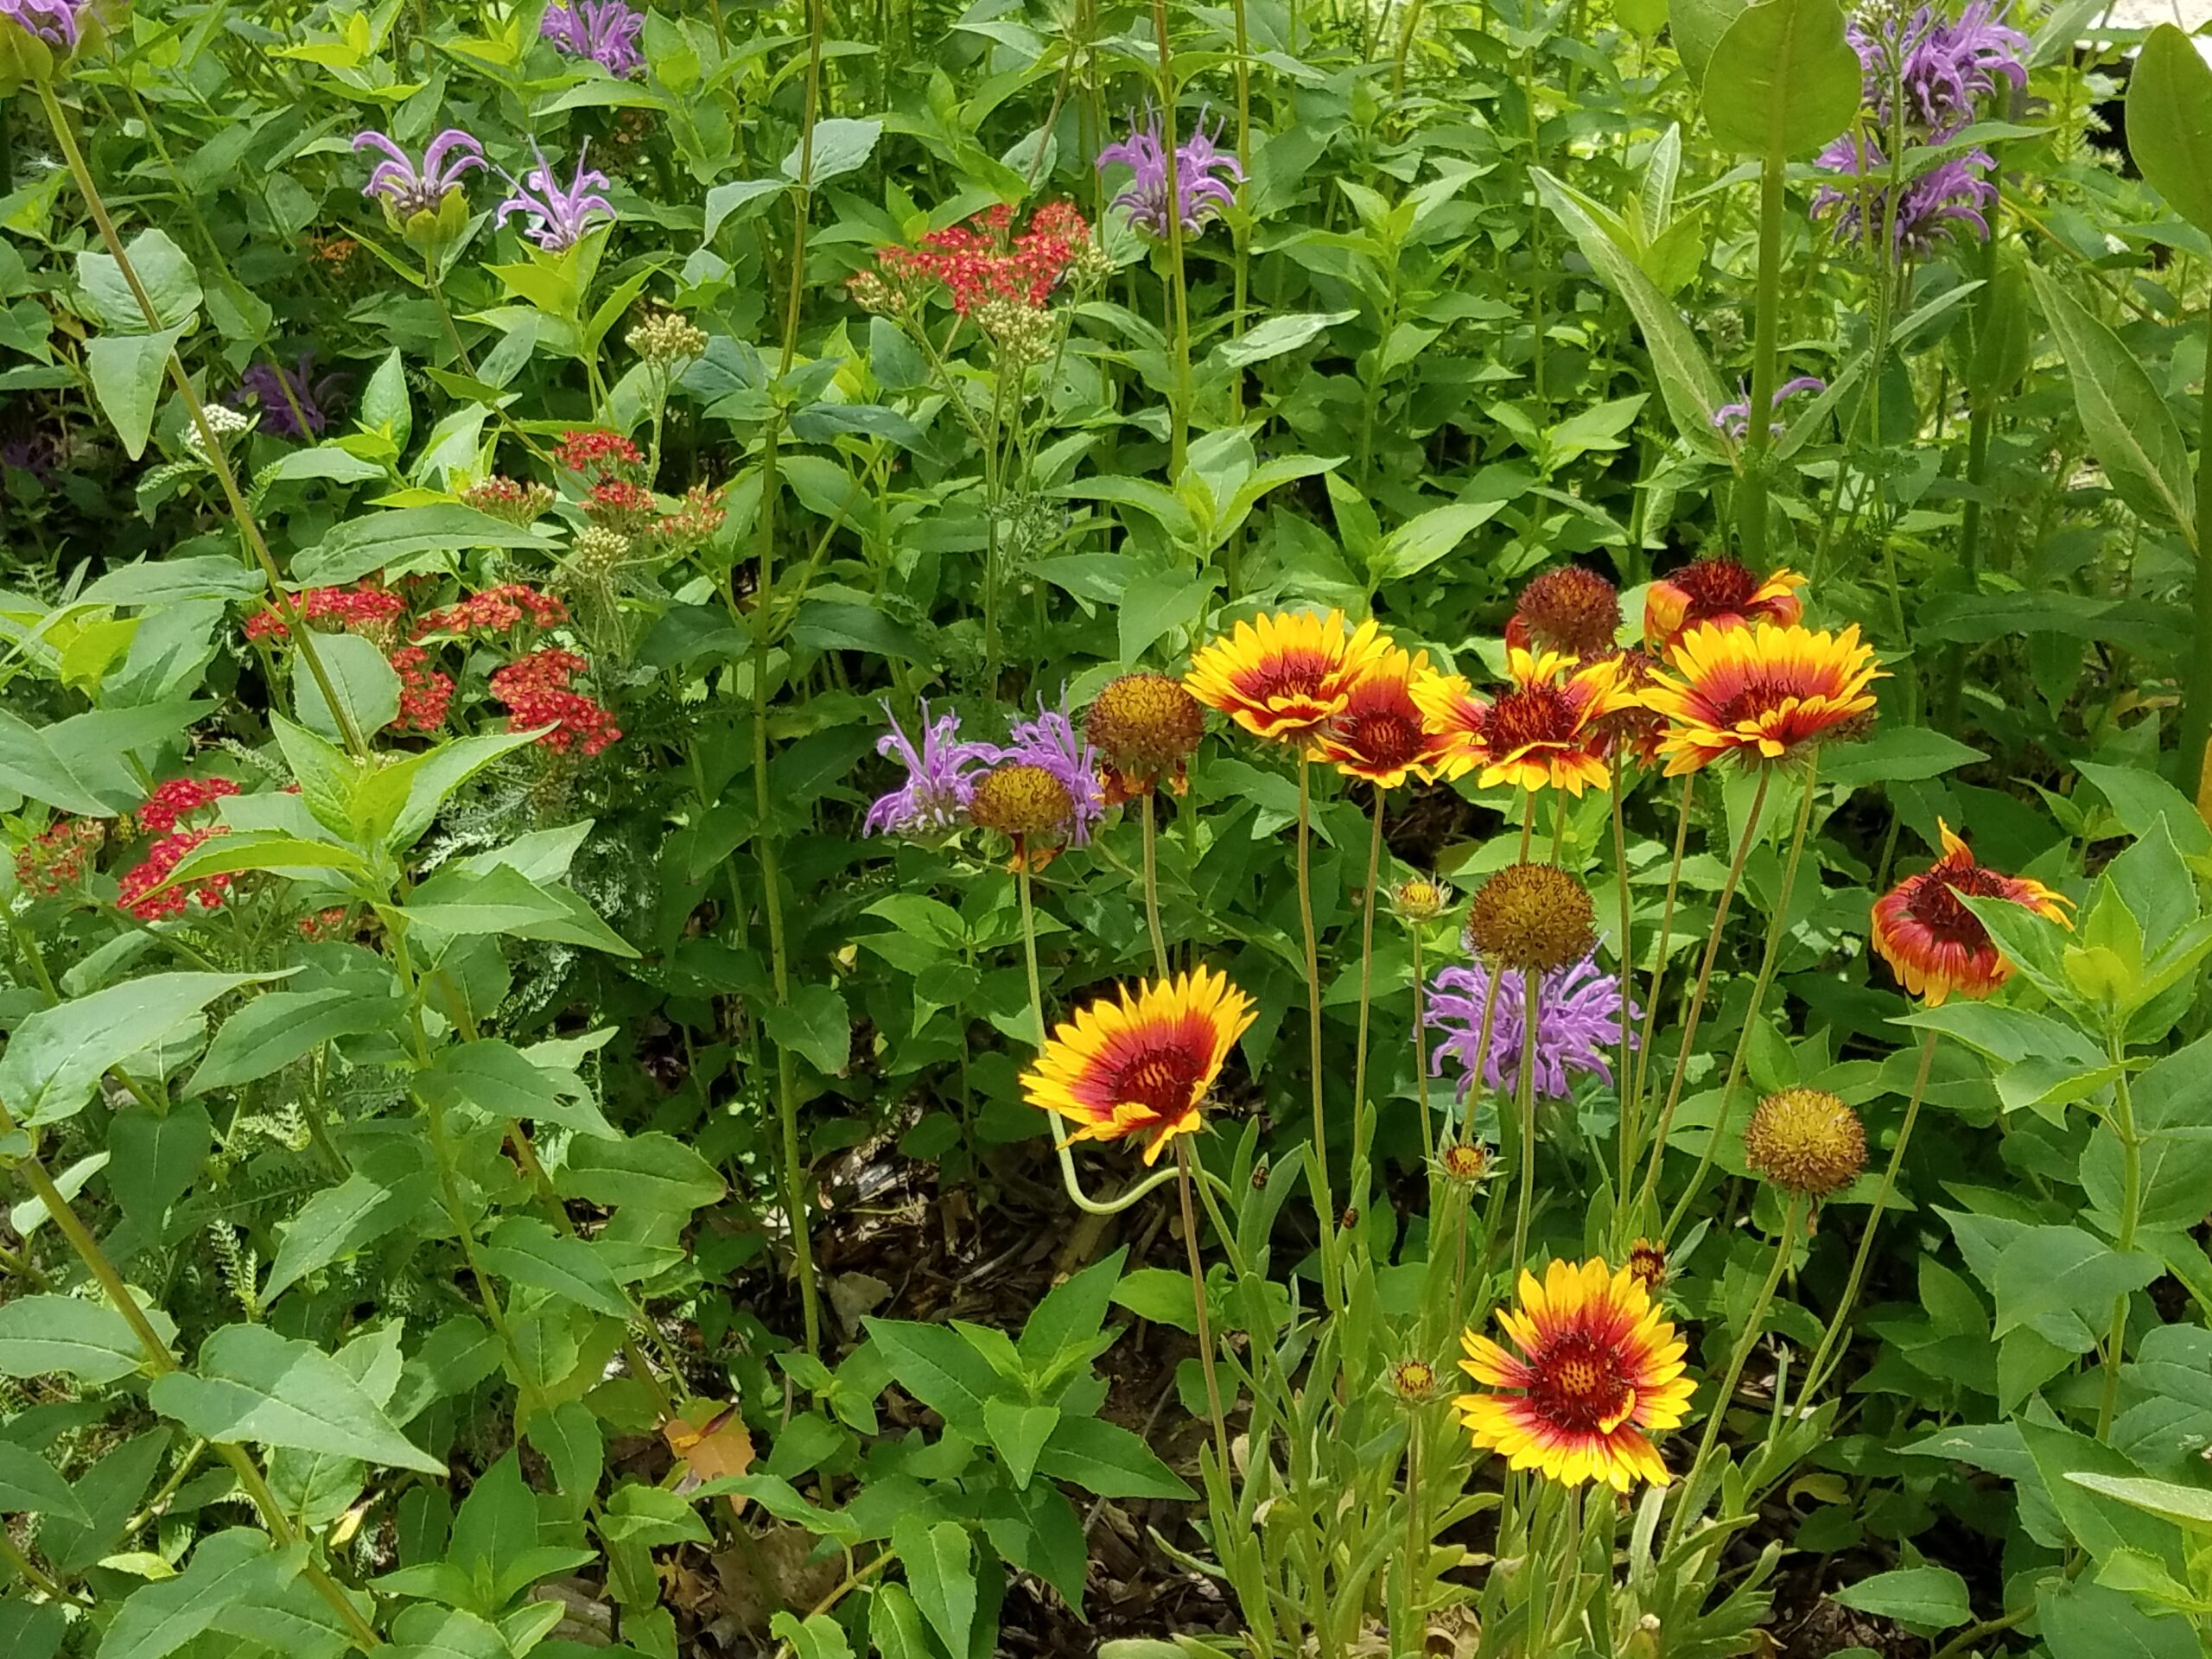 Flowers in Native Plant Garden.